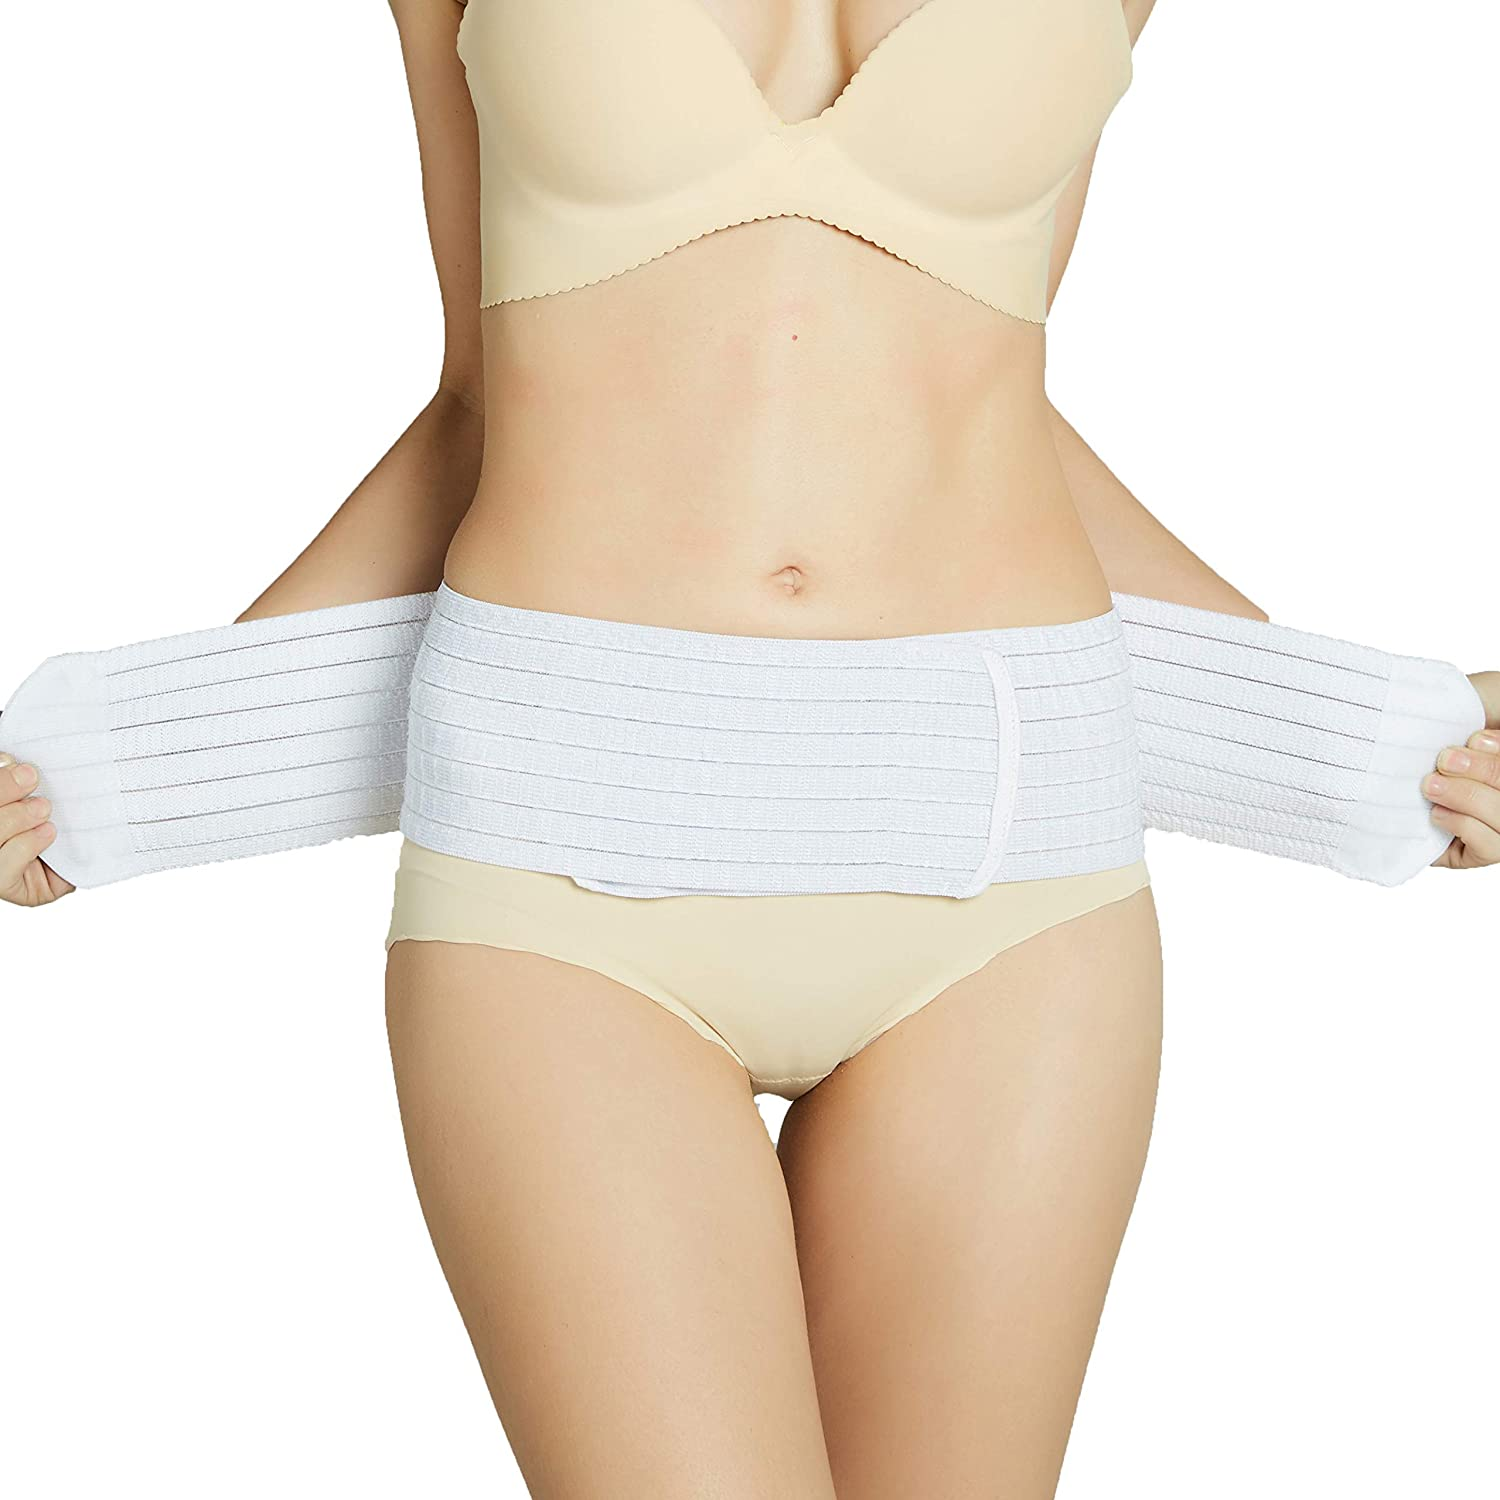 Neotech Care 3-in-1 Maternity Pregnancy Support White XL Size Postpartum Belly Wrap /& Pelvis Belt//Brace//Band Breathable Girdle